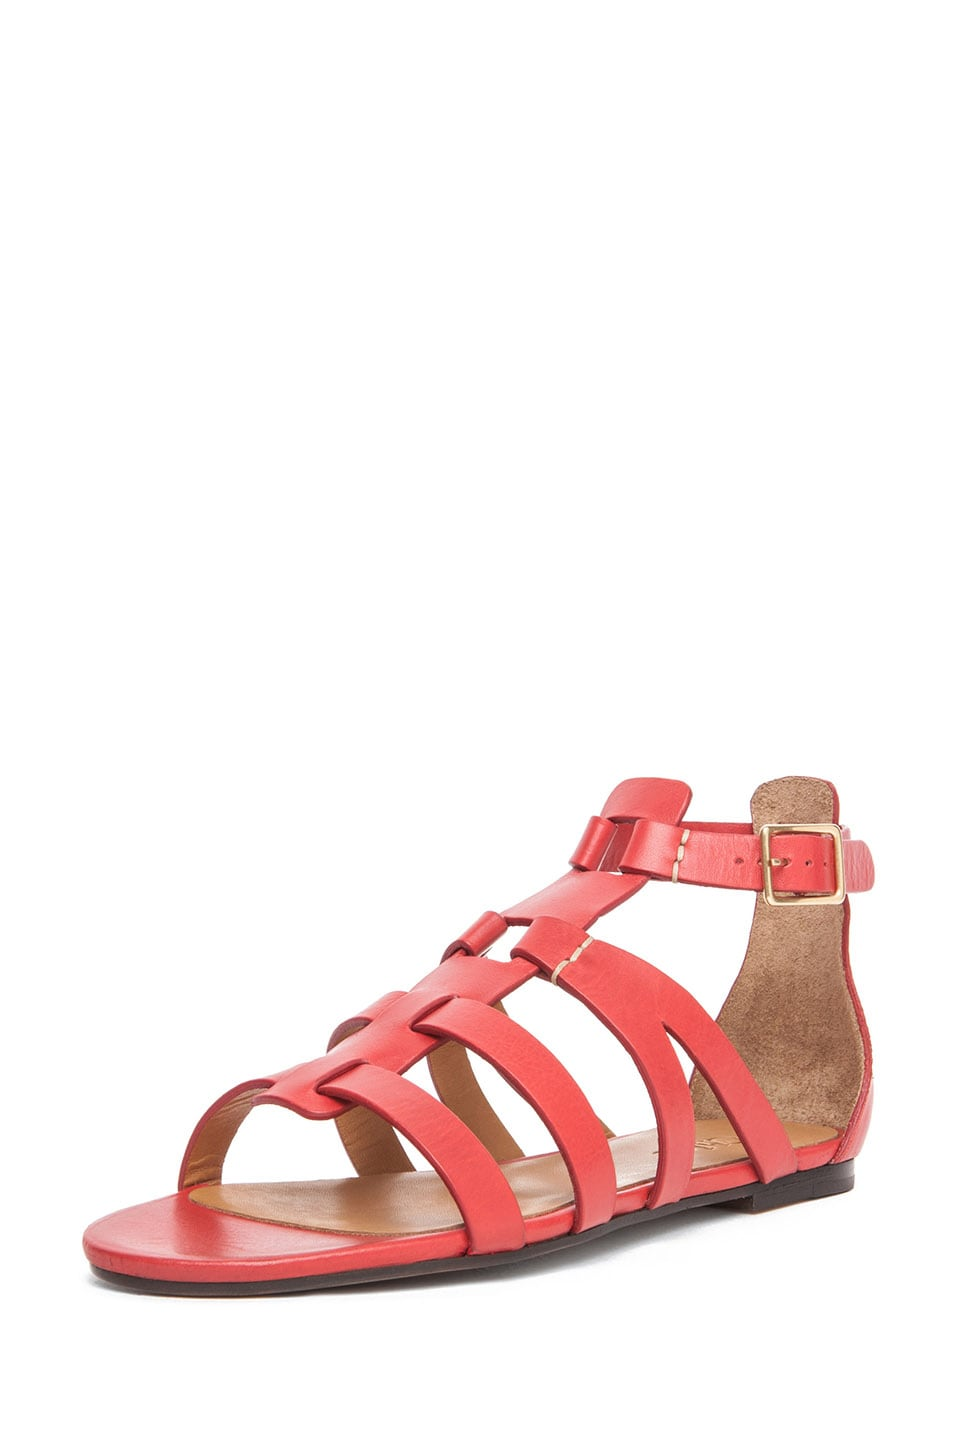 Image 2 of Chloe Leather Gladiator Sandals in Red